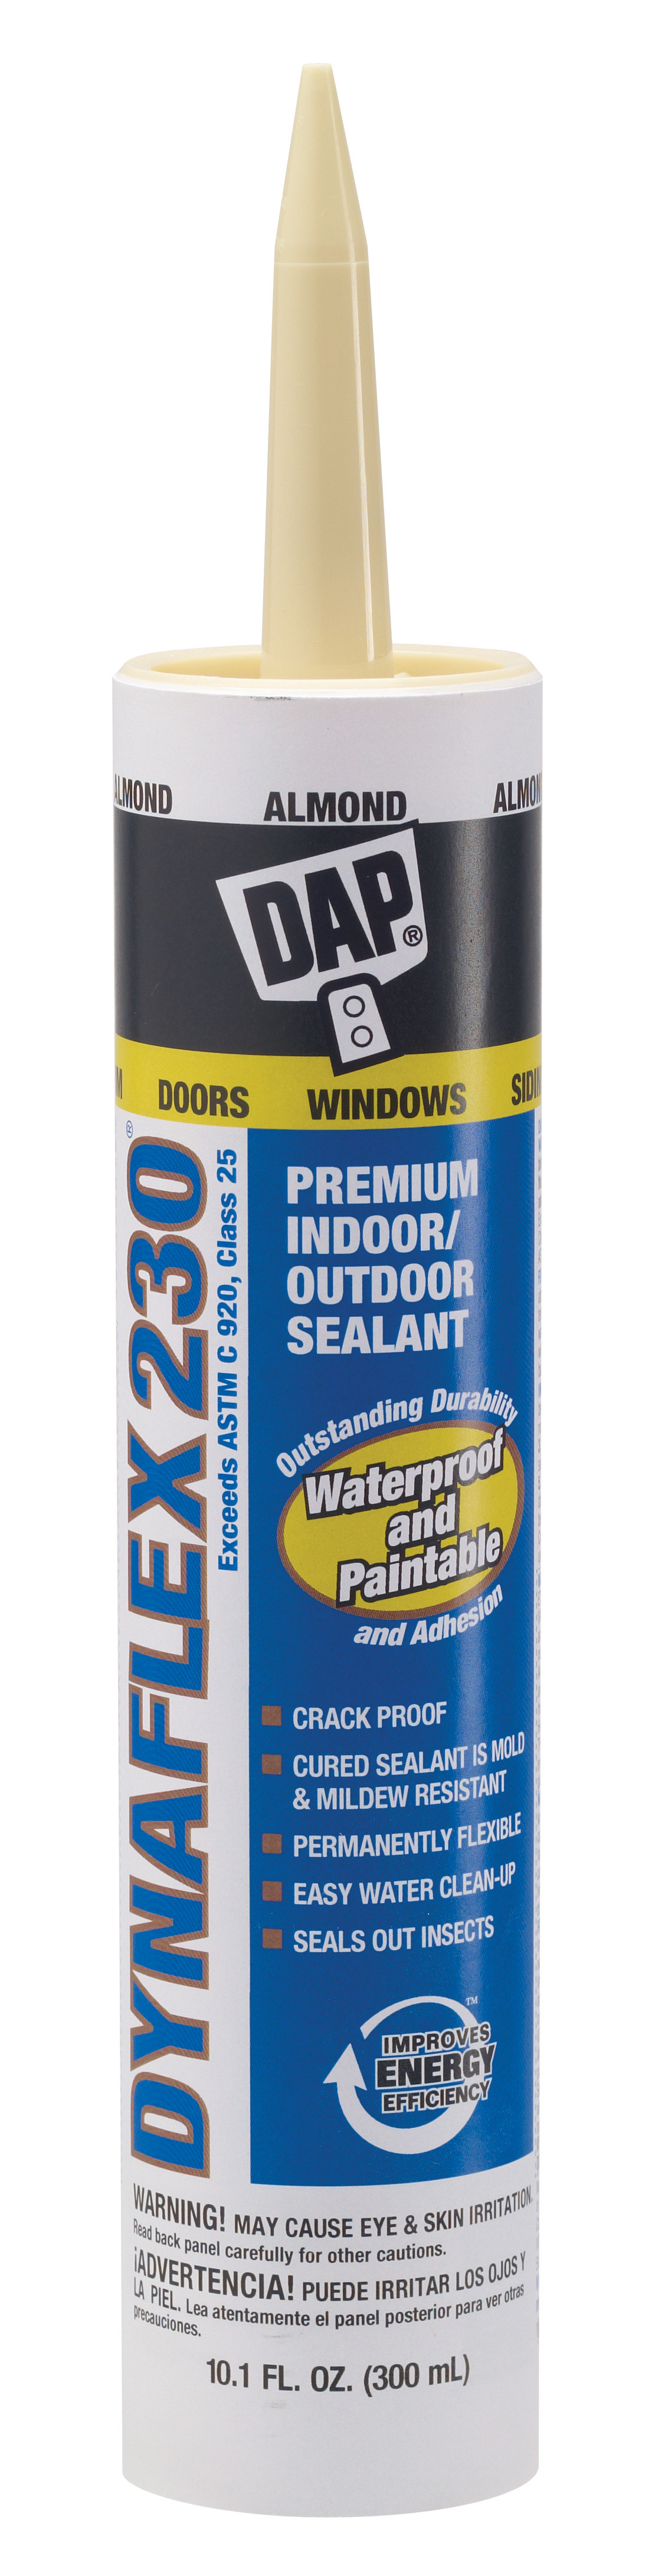 18288 DAP Caulk Sealant Used For Both Interior And Exterior